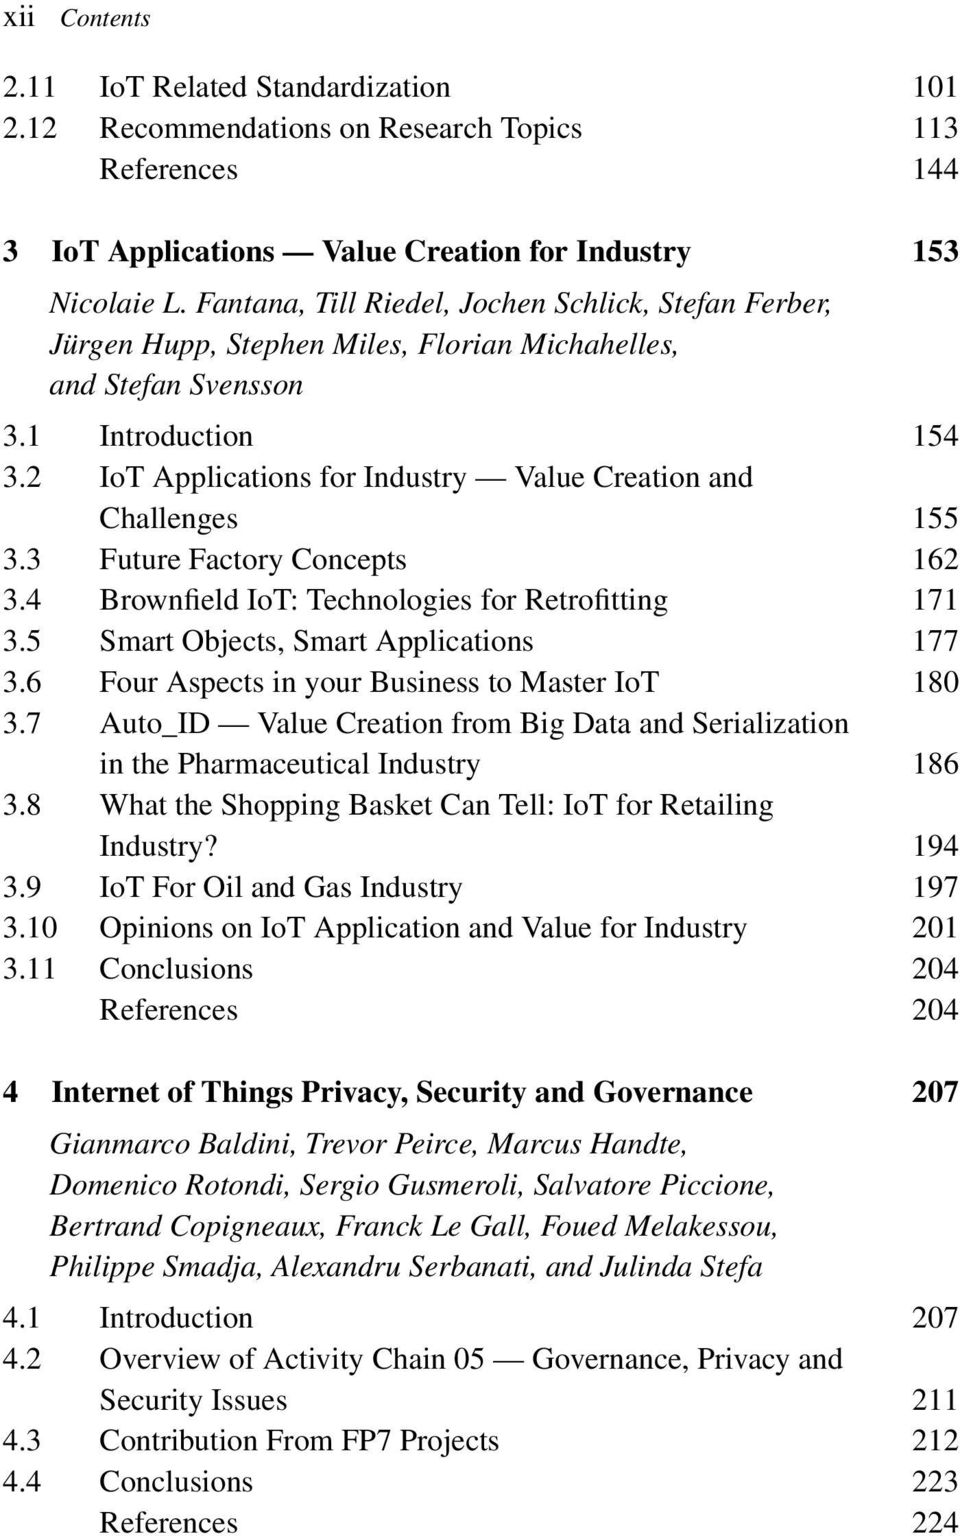 2 IoT Applications for Industry Value Creation and Challenges 155 3.3 Future Factory Concepts 162 3.4 Brownfield IoT: Technologies for Retrofitting 171 3.5 Smart Objects, Smart Applications 177 3.